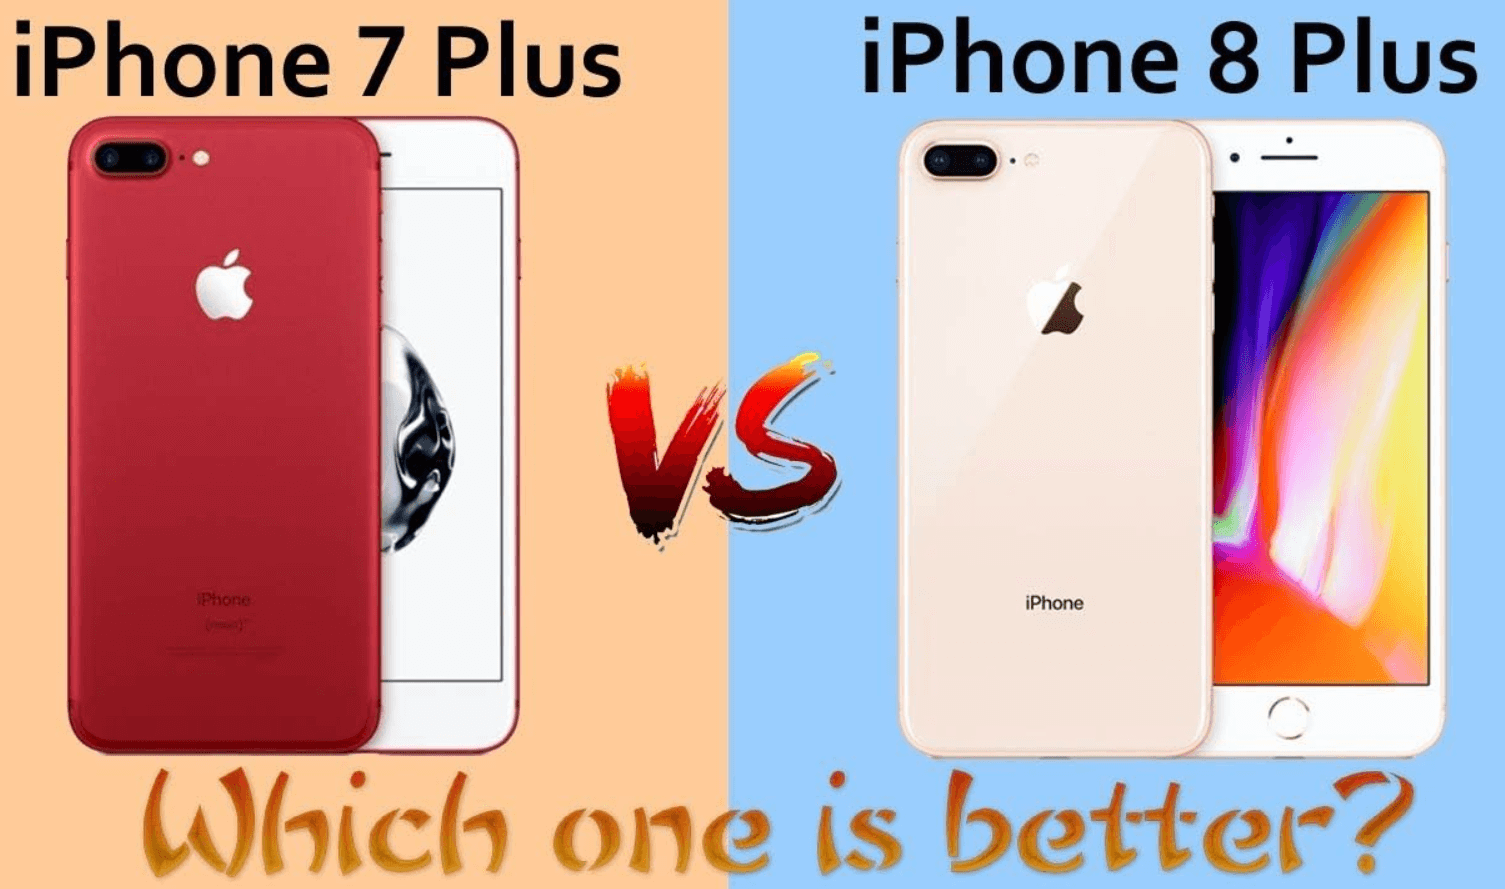 Is It Worth Buying The iPhone 7 Plus In 2020 Or Should Buy The iPhone 8 Plus?